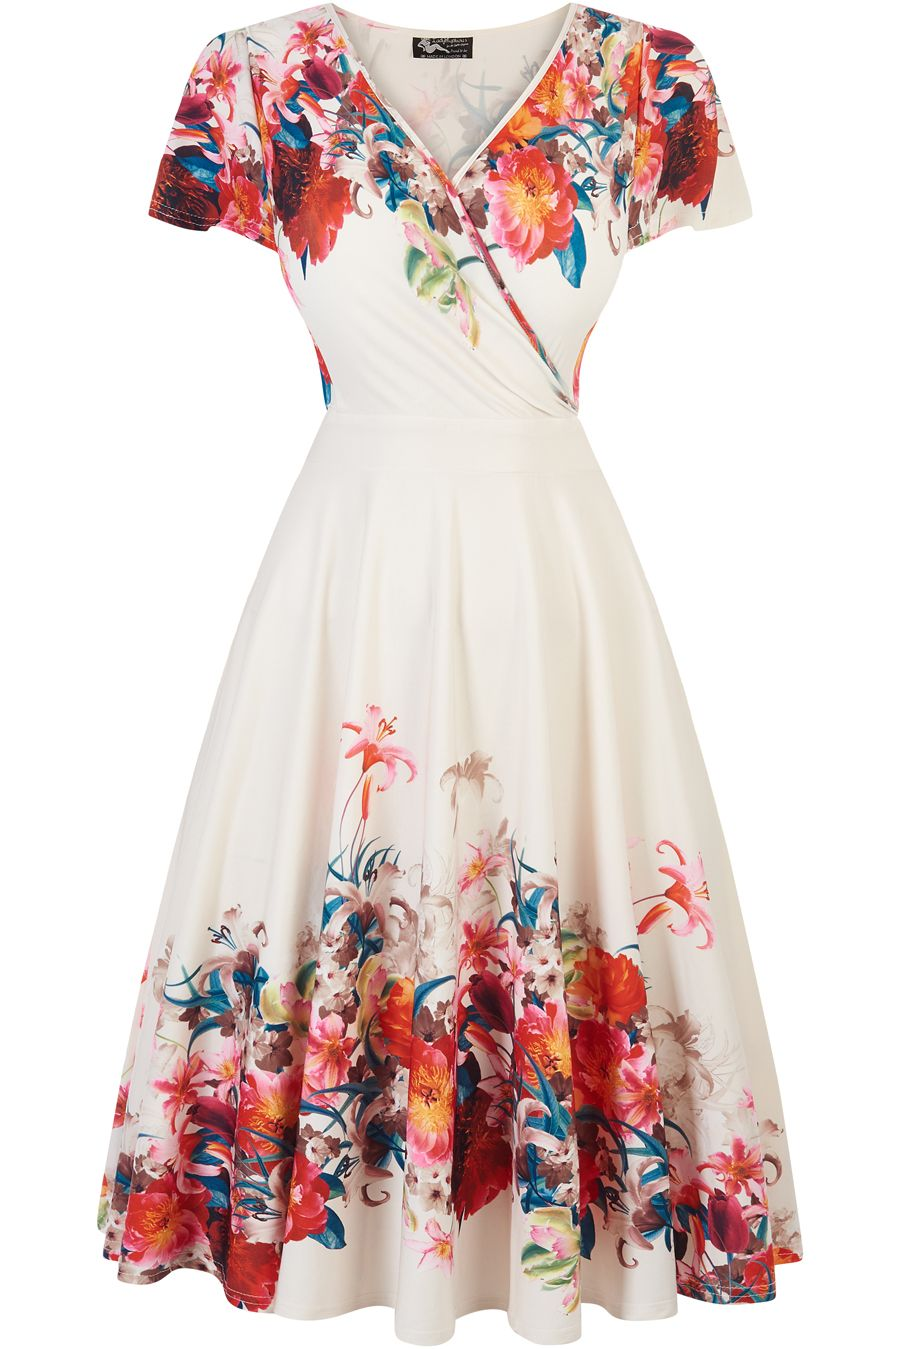 The iconic Elegant Floral Border Lyra Dress is back for